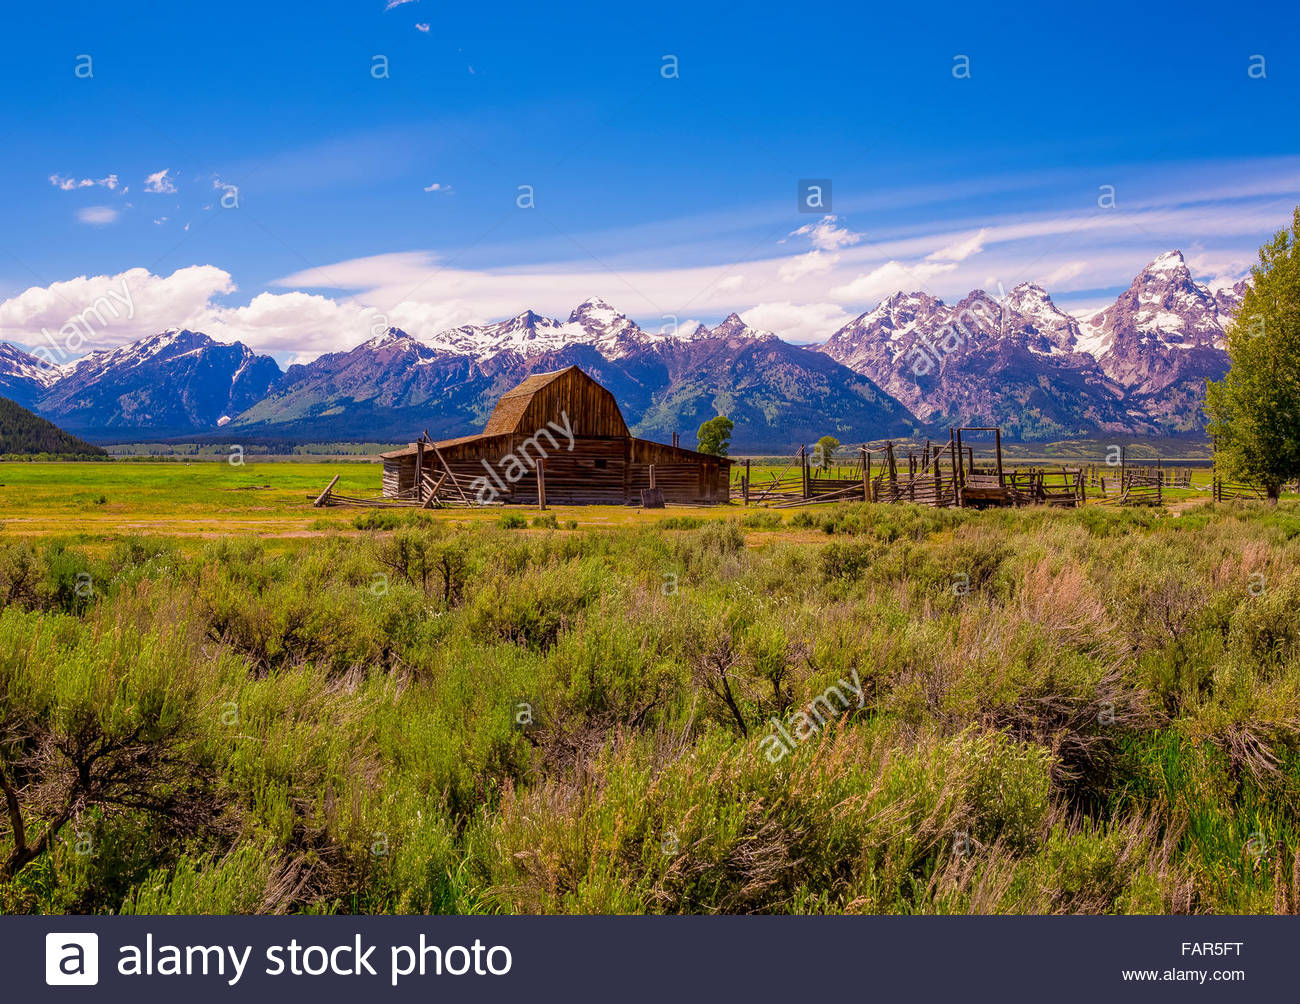 moultons barn with the Grand Tetons in the background Stock Photo 1300x1004